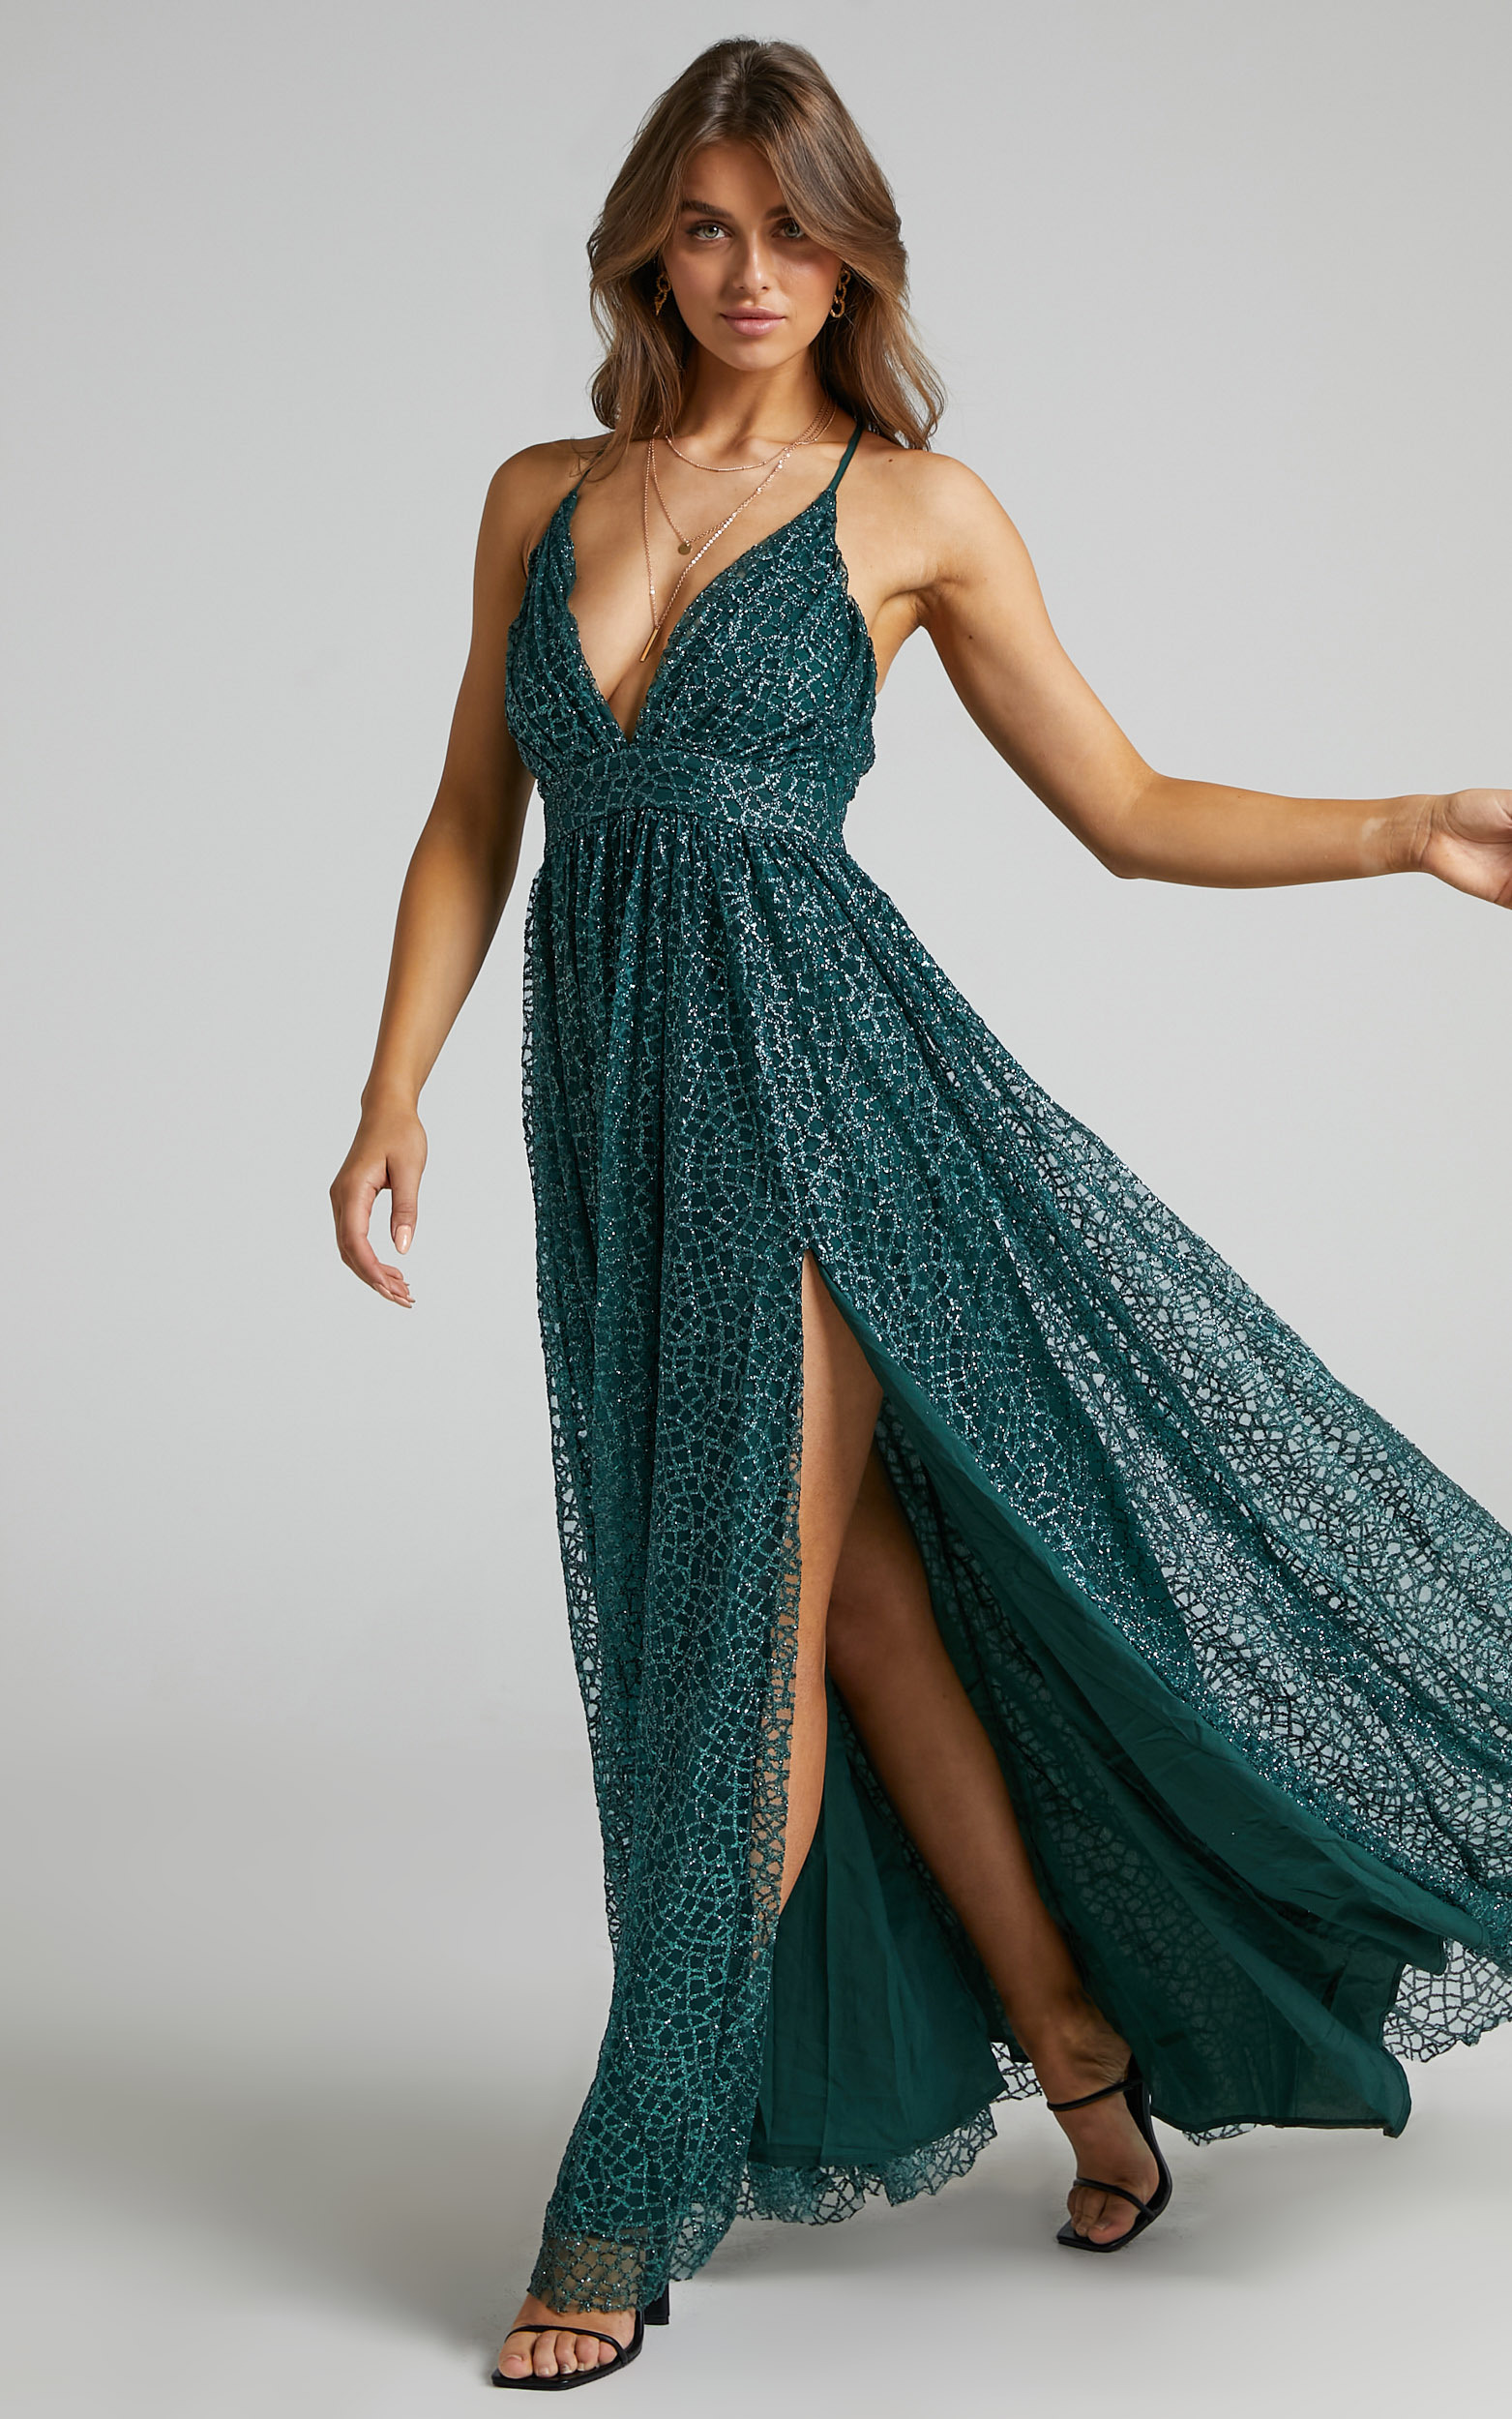 Lady Godiva Dress in Emerald Glitter Tulle - 06, GRN2, hi-res image number null